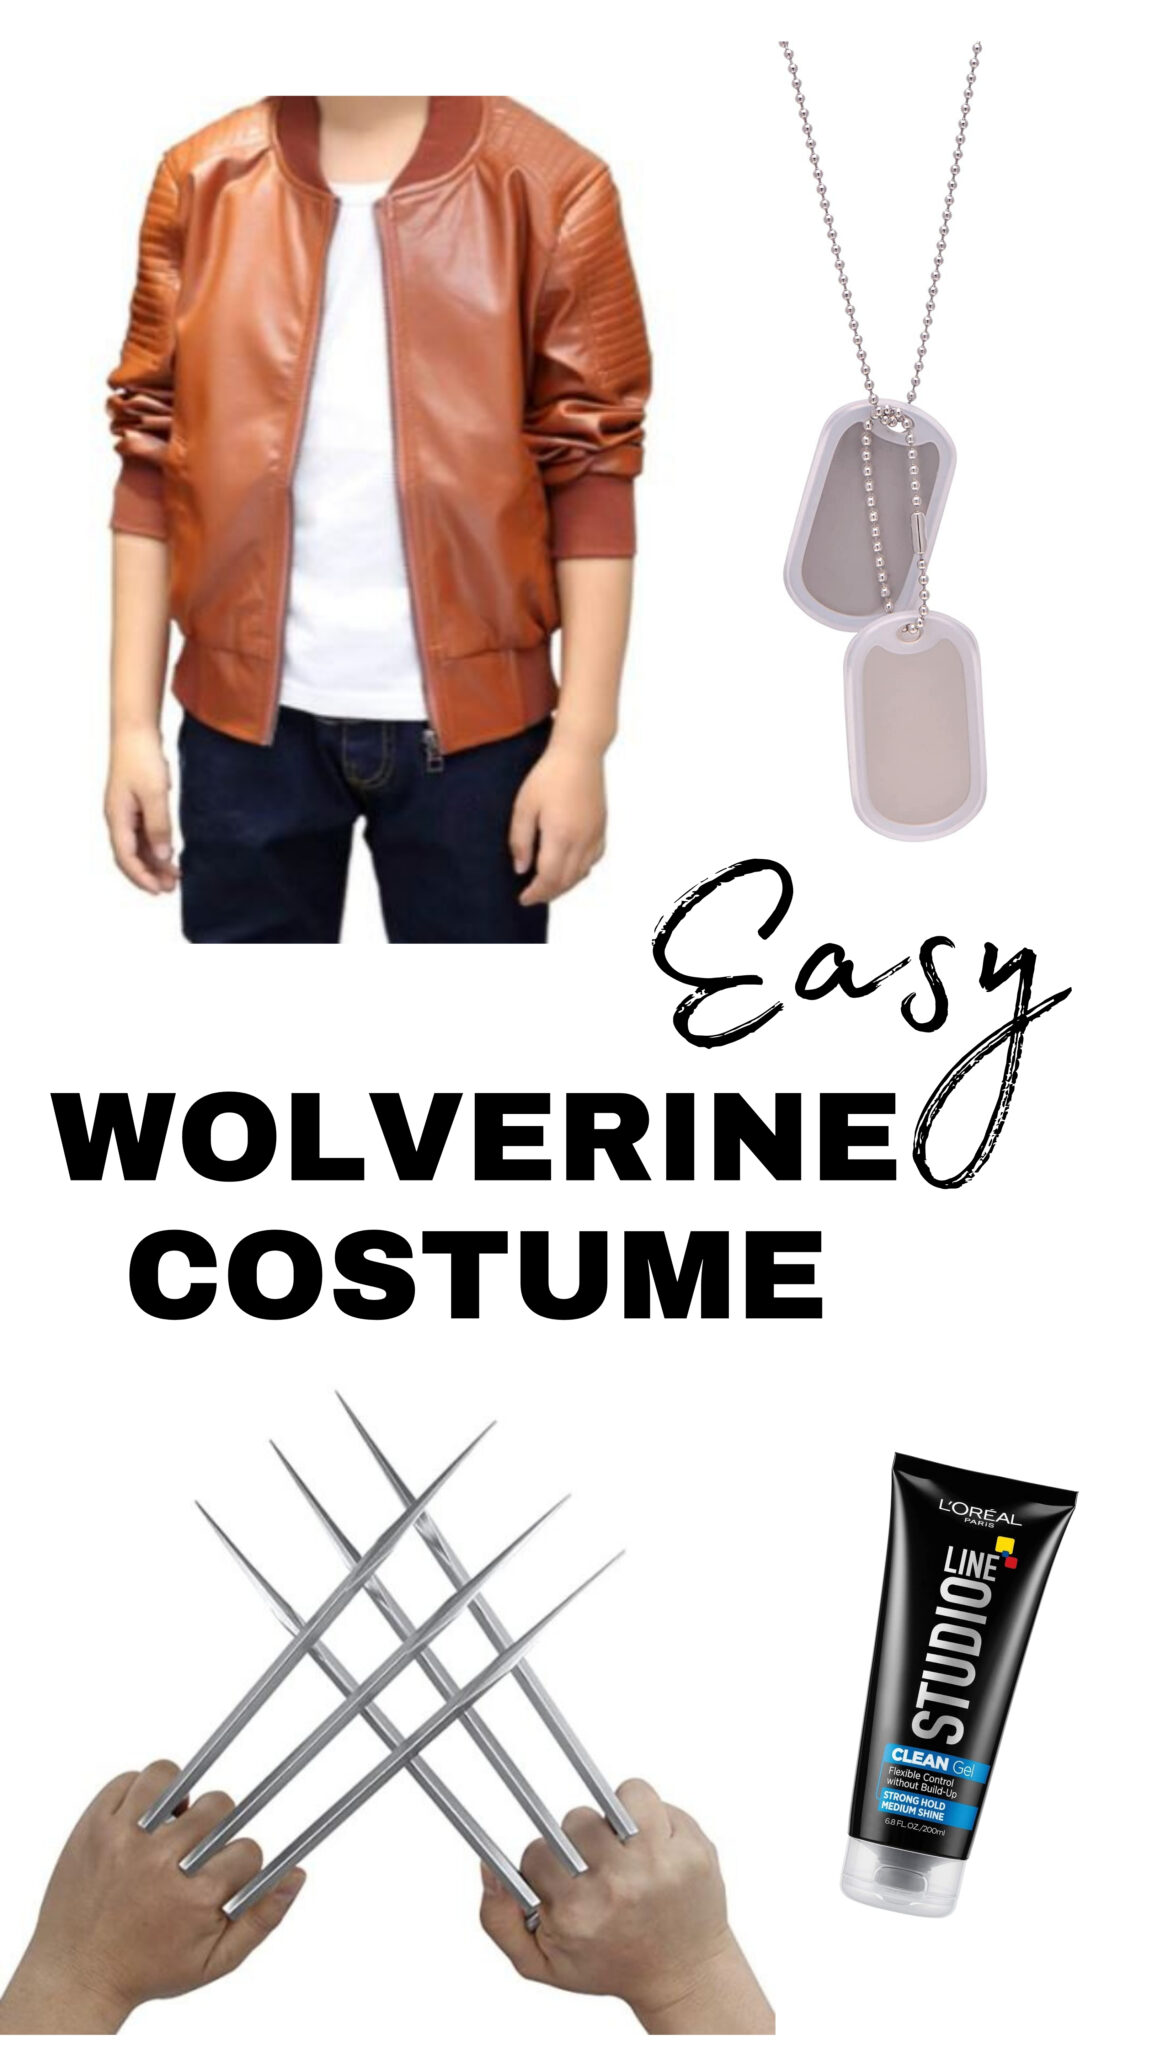 East DIY Marvel Themed Costumes for Halloween Using Regular Clothes All Things with Purpose Sarah Lemp 3